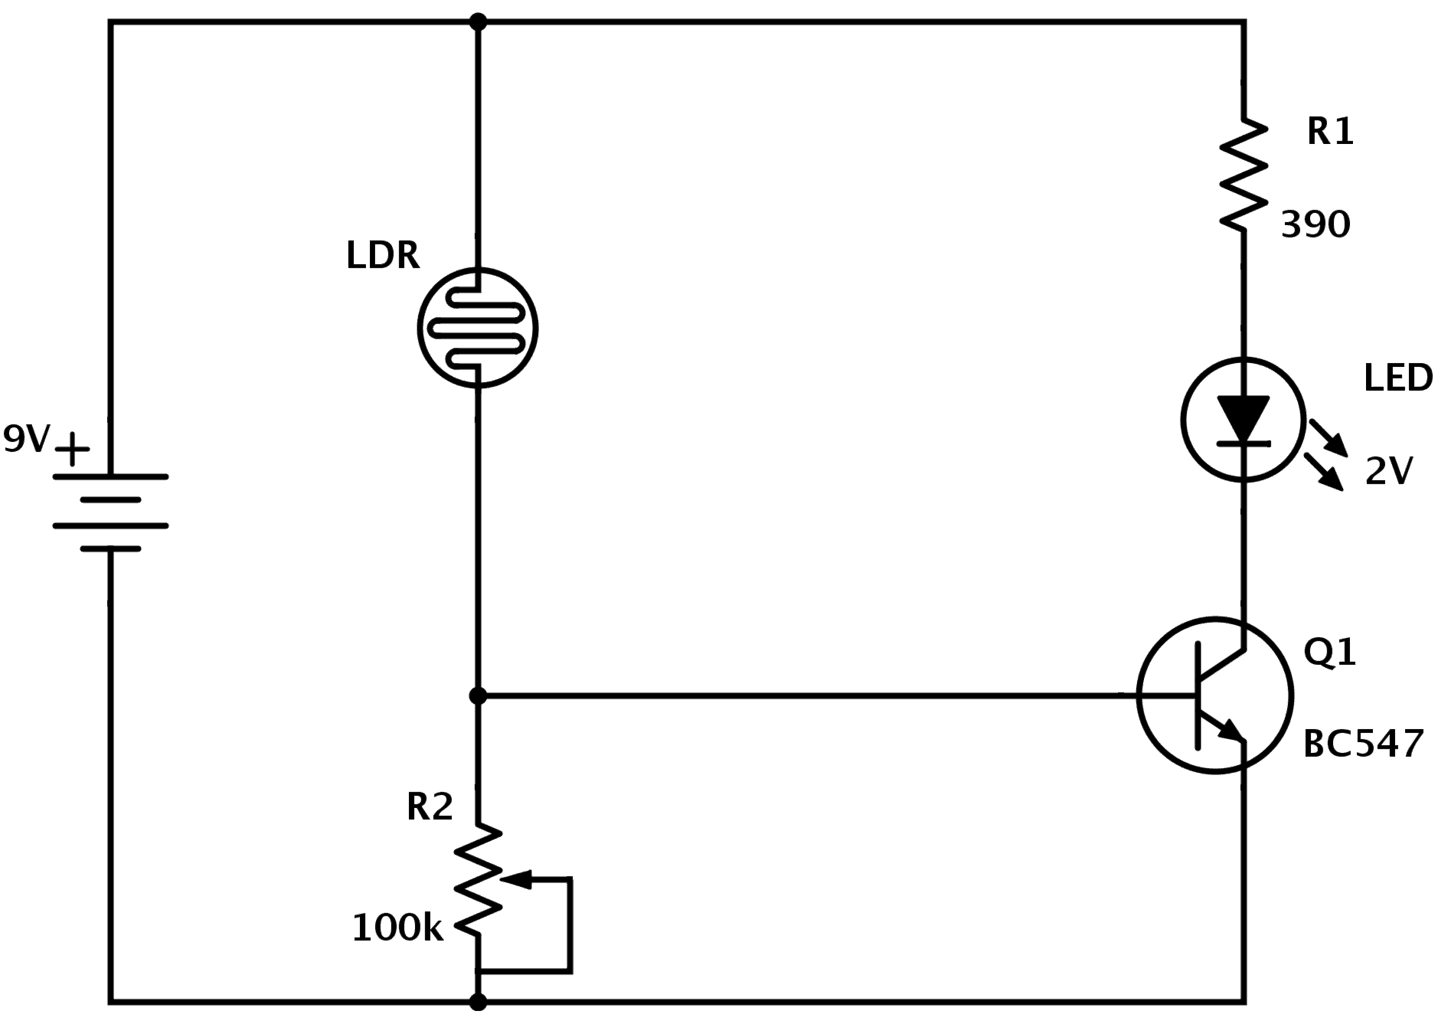 Circuit Diagram: How To Read And Understand Any Schematic on